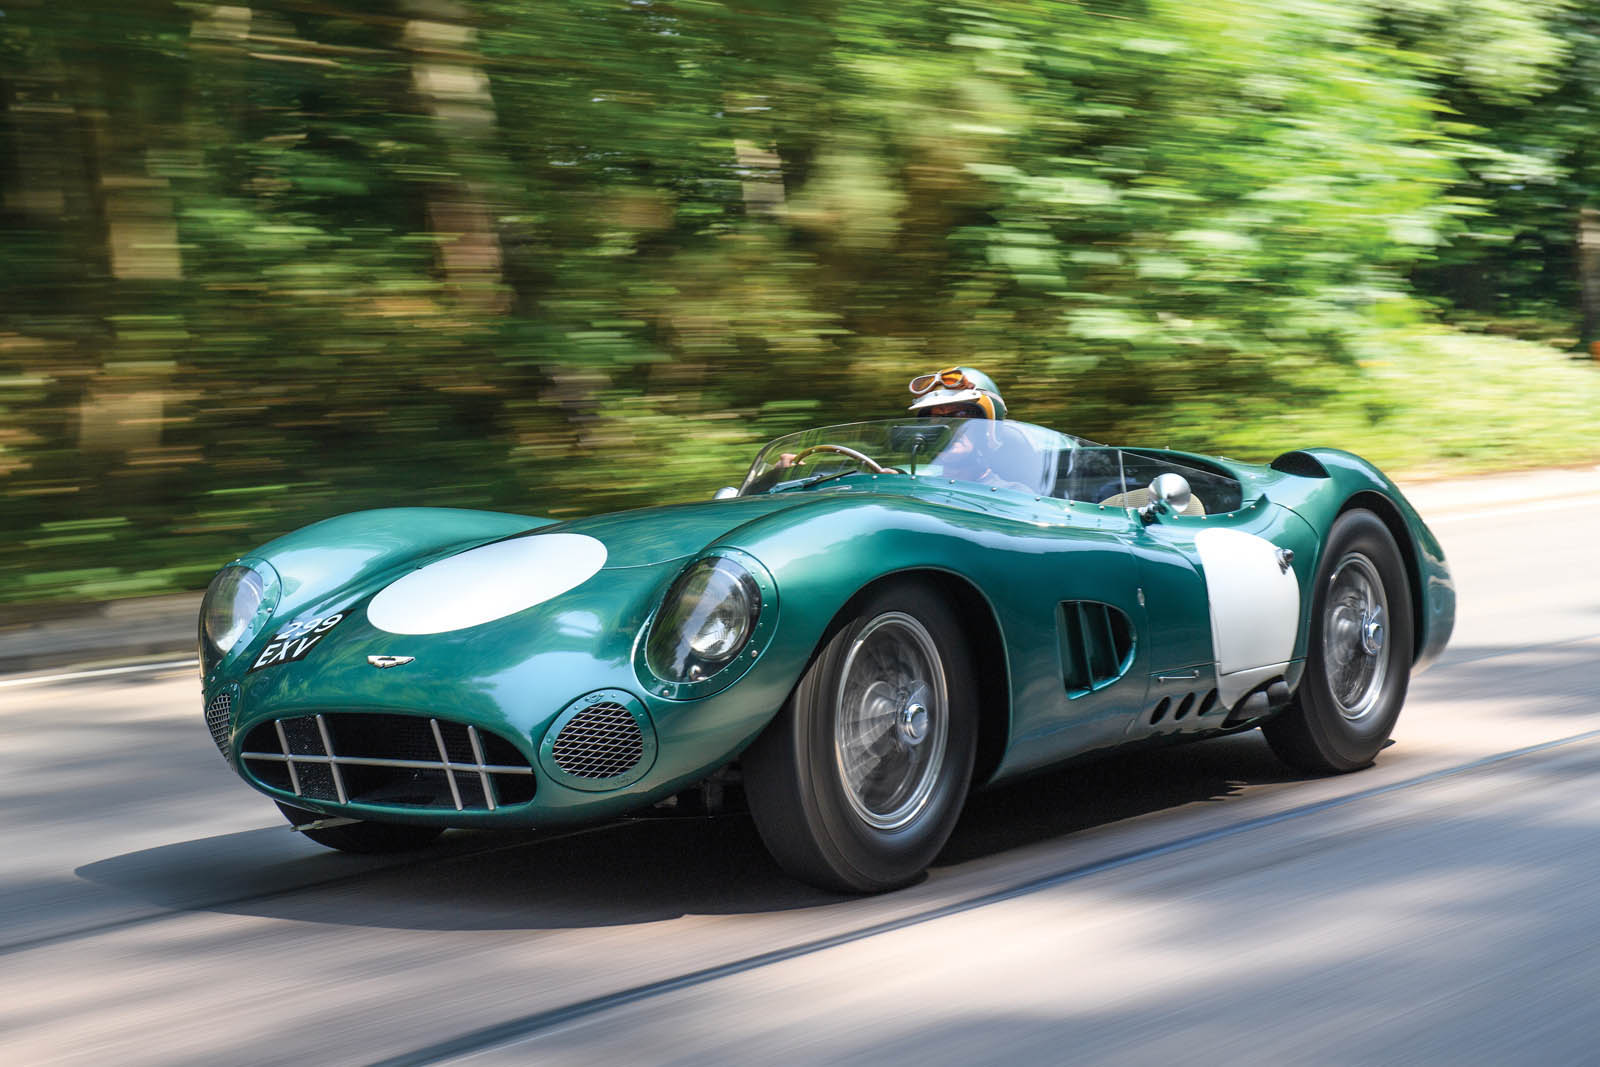 The Most Expensive British Car Ever Sold At Auction Is ...